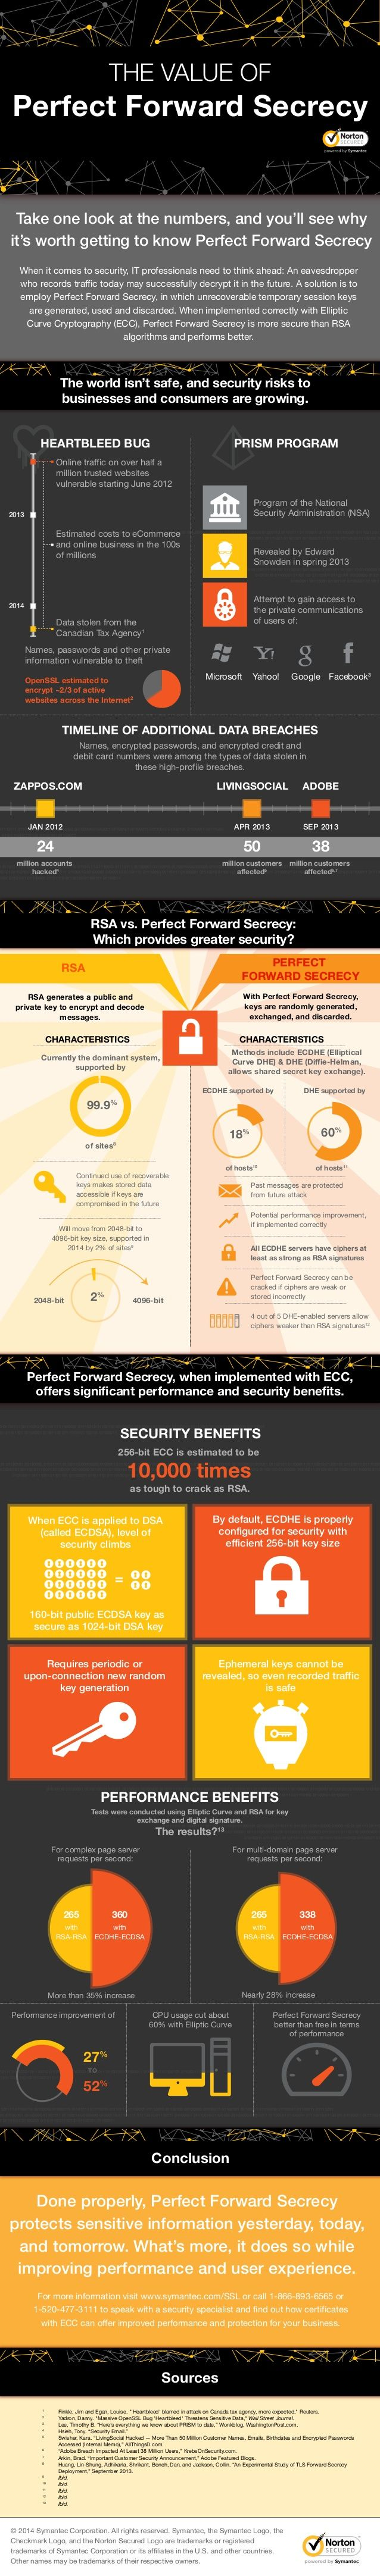 Symantec™ Perfect Forward Secrecy in Info-Graphic by RapidSSLOnline via slideshare